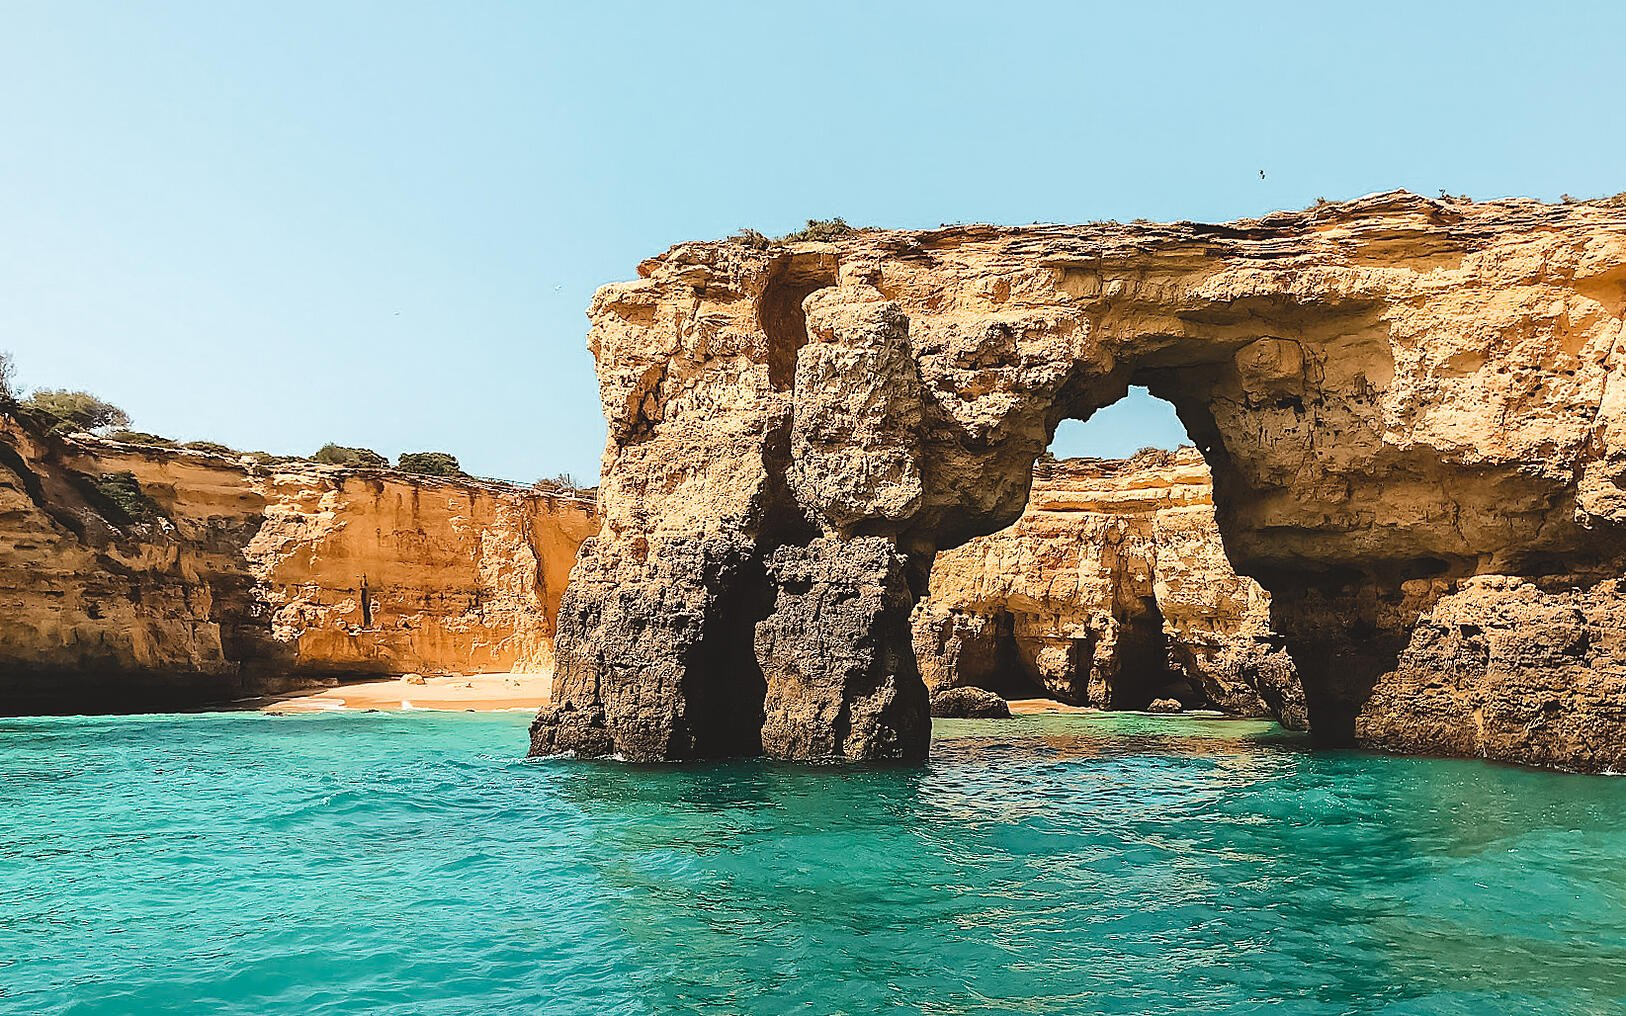 Sea arch surrounded by blue water